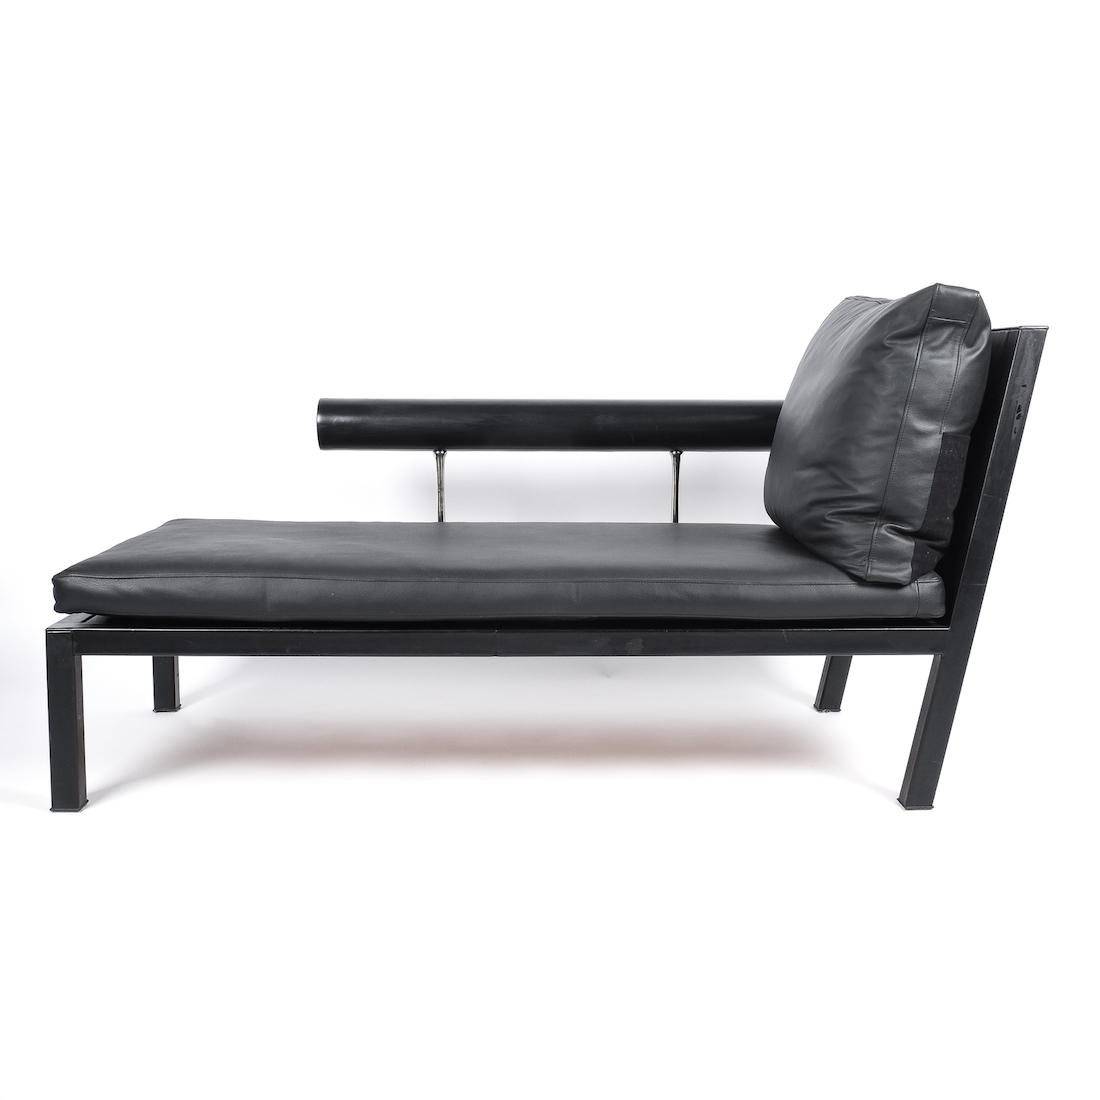 - Antonio Citterio For B&B Italy Black Leather Chaise Lounge Baisity